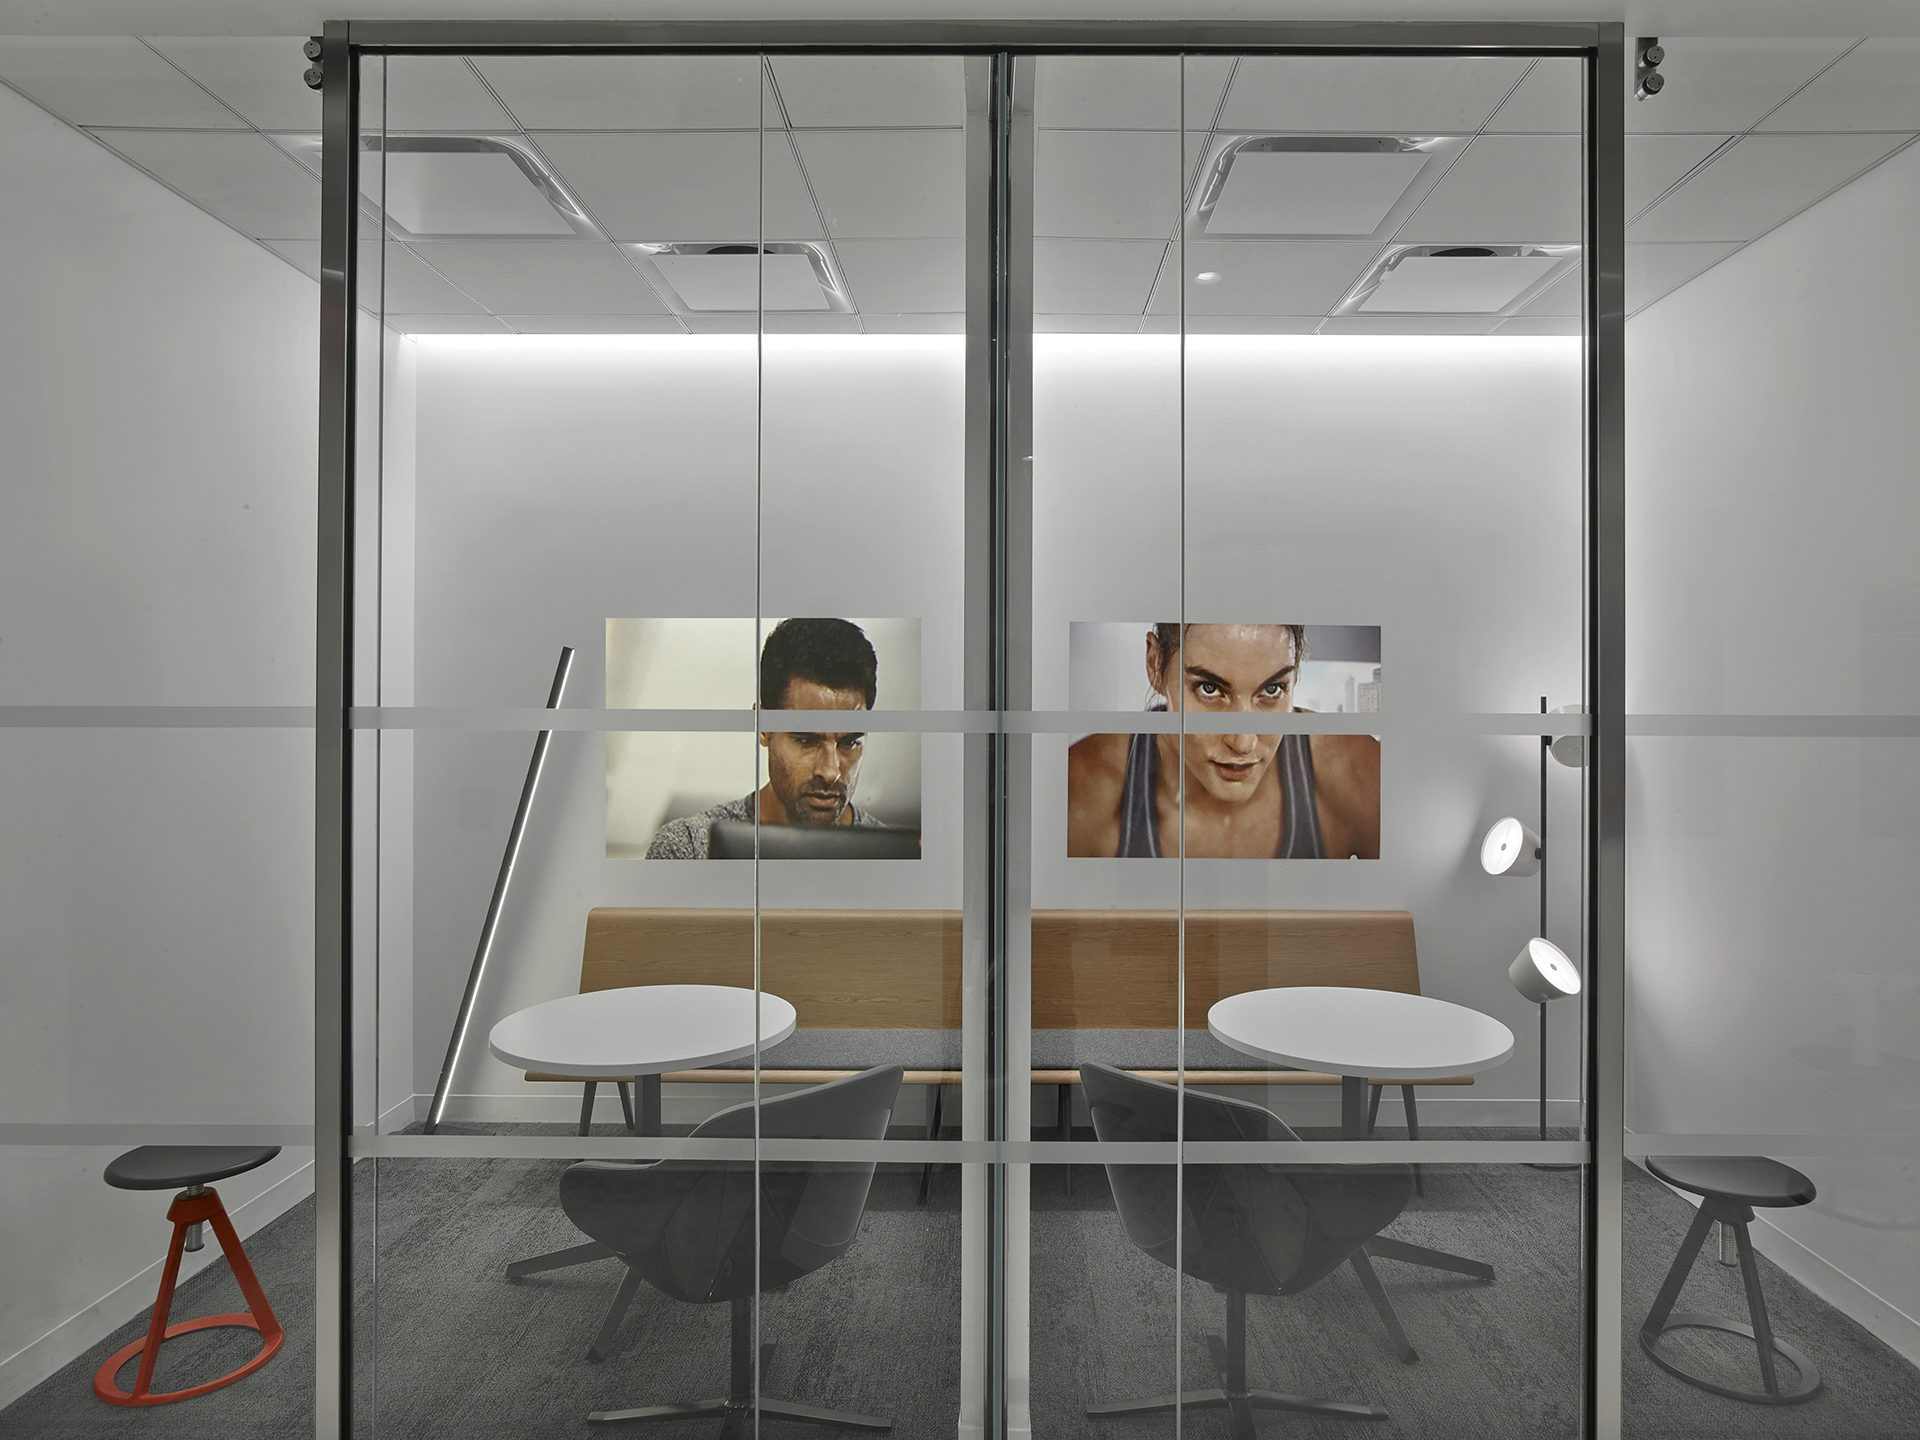 Small phone rooms for private calls at the new Peloton Headquarters